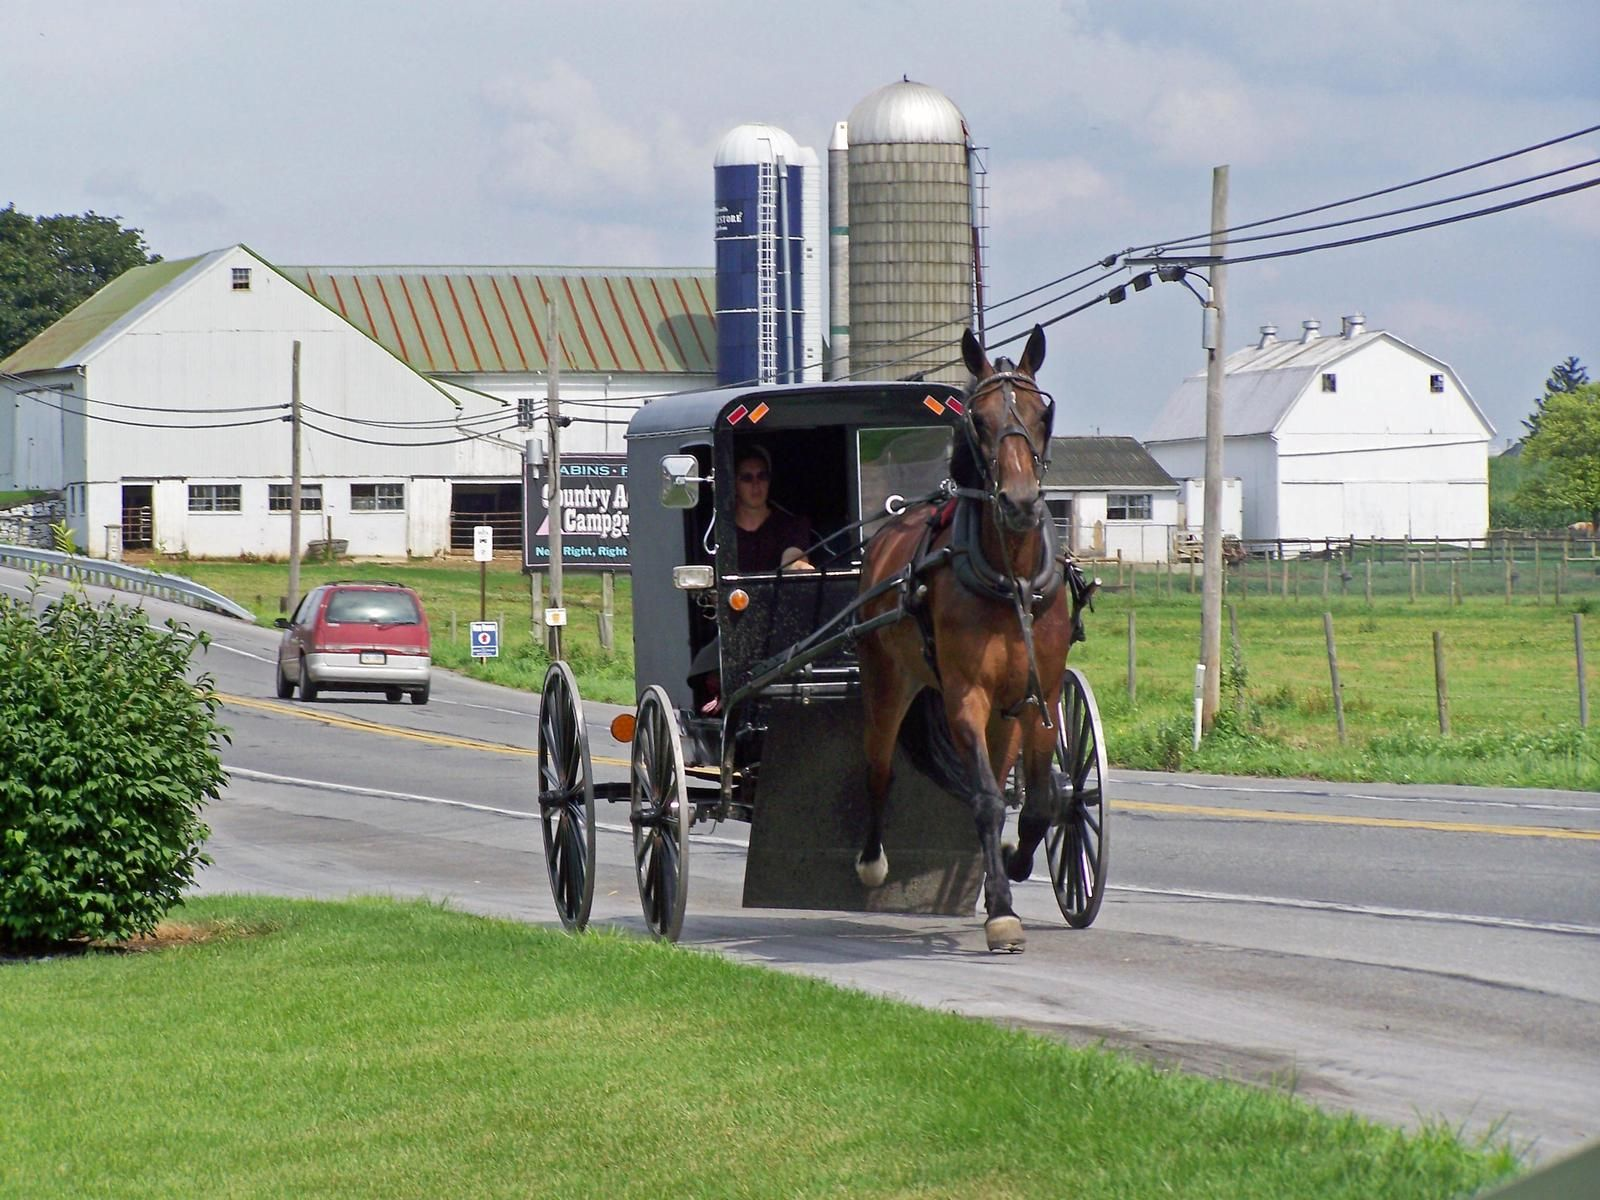 Bird In Hand Pa >> Bird In Hand Pa Amazing To See The Amish Way Of Life Lugares